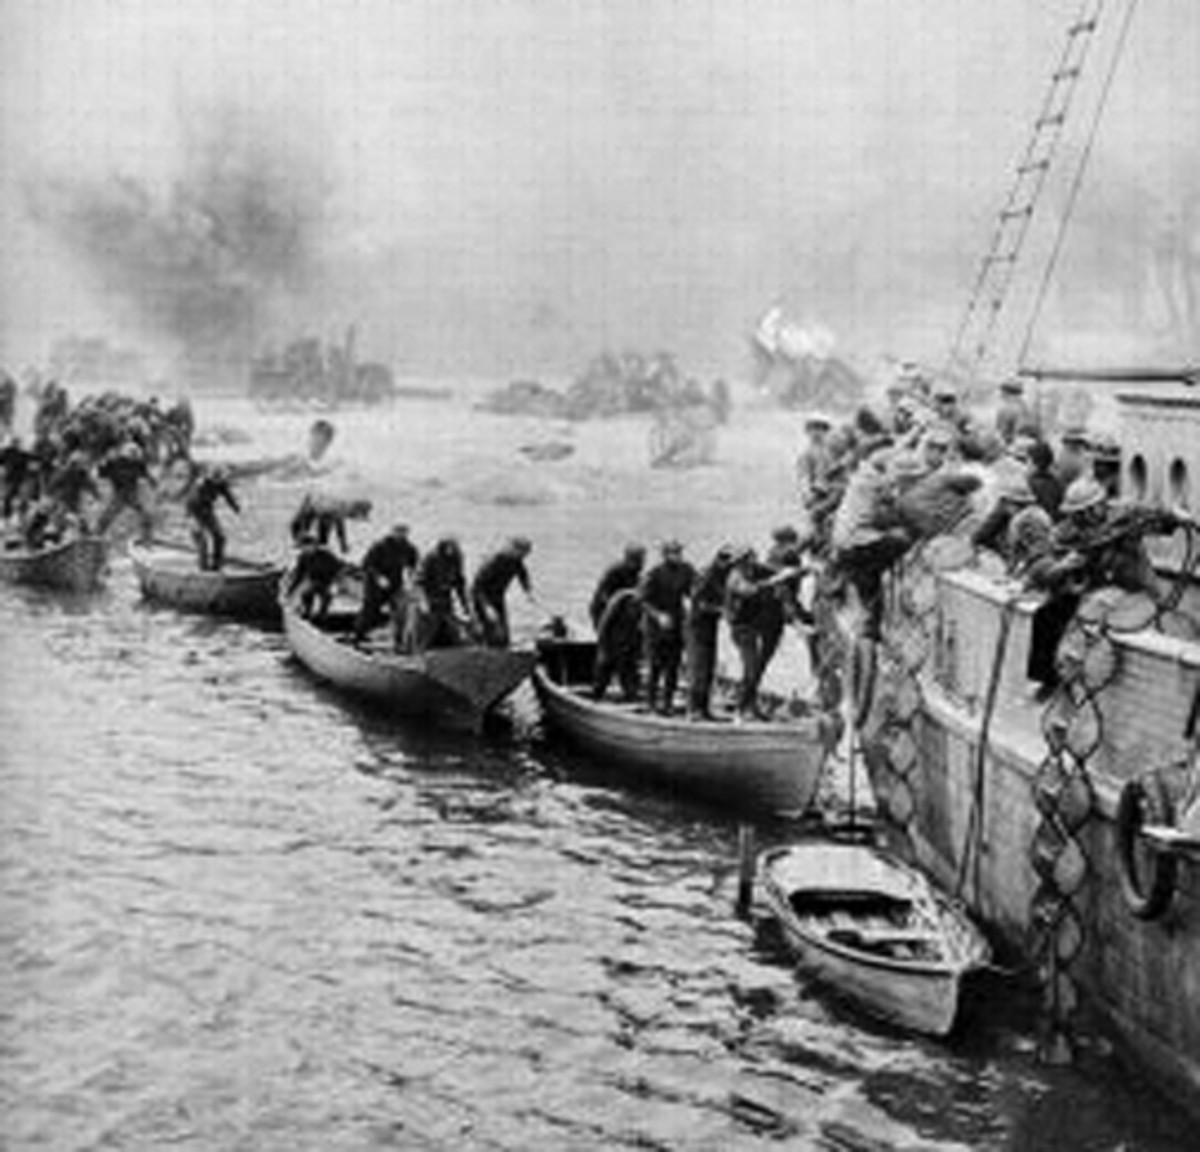 world-war-2-dunkirk